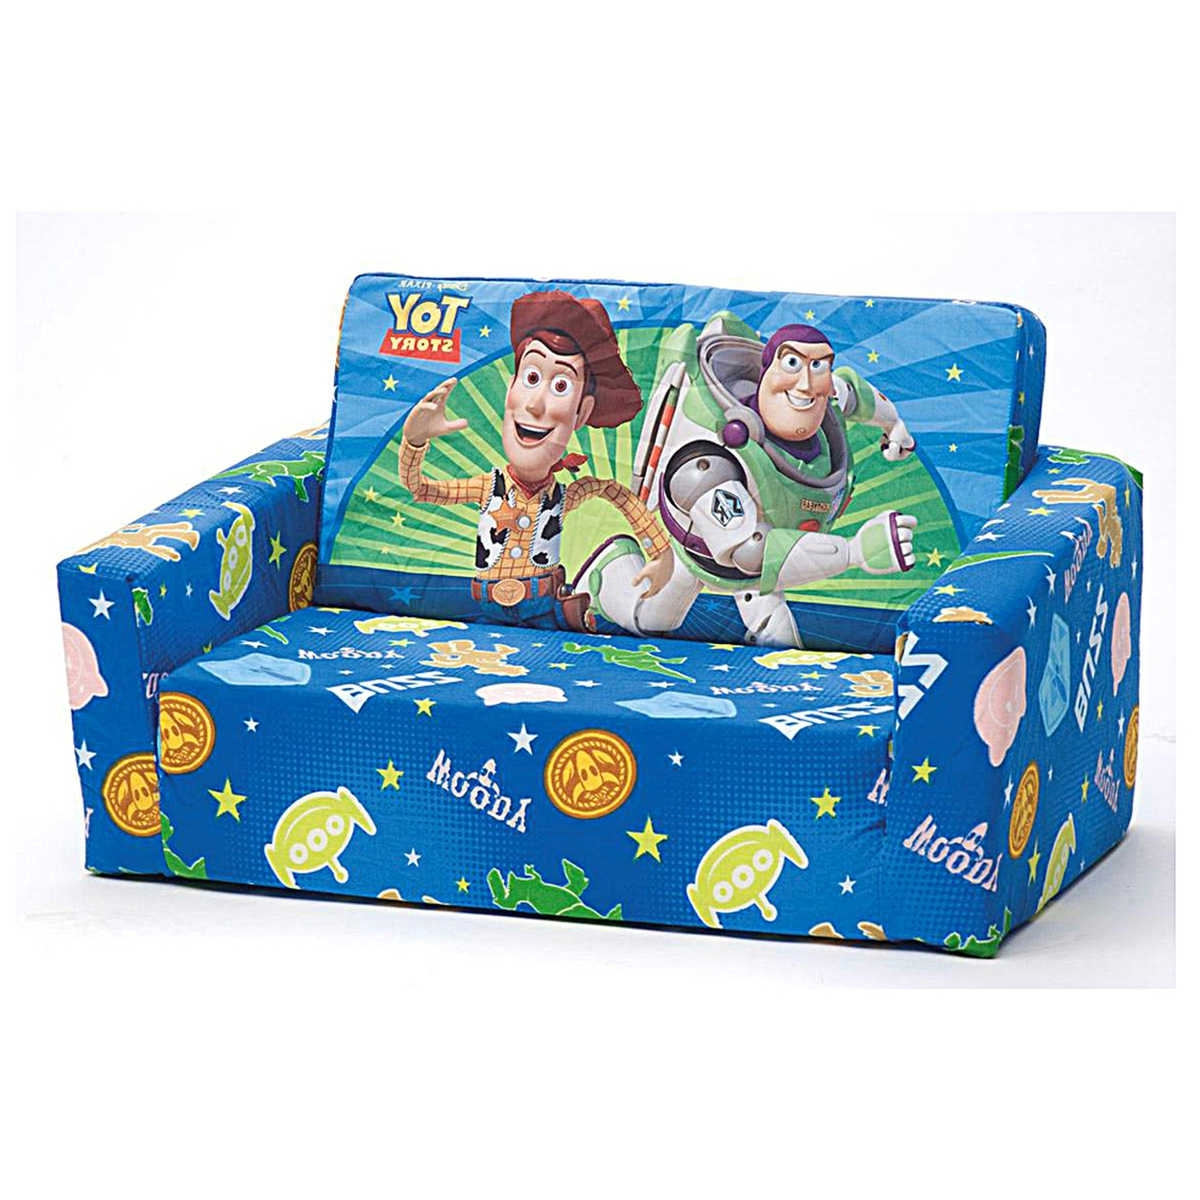 Trendy 28 Kids Foam Flip Out Sofa Bed, Foam Flip Out Sofa Fold Out Foam Throughout Flip Out Sofa For Kids (View 4 of 15)